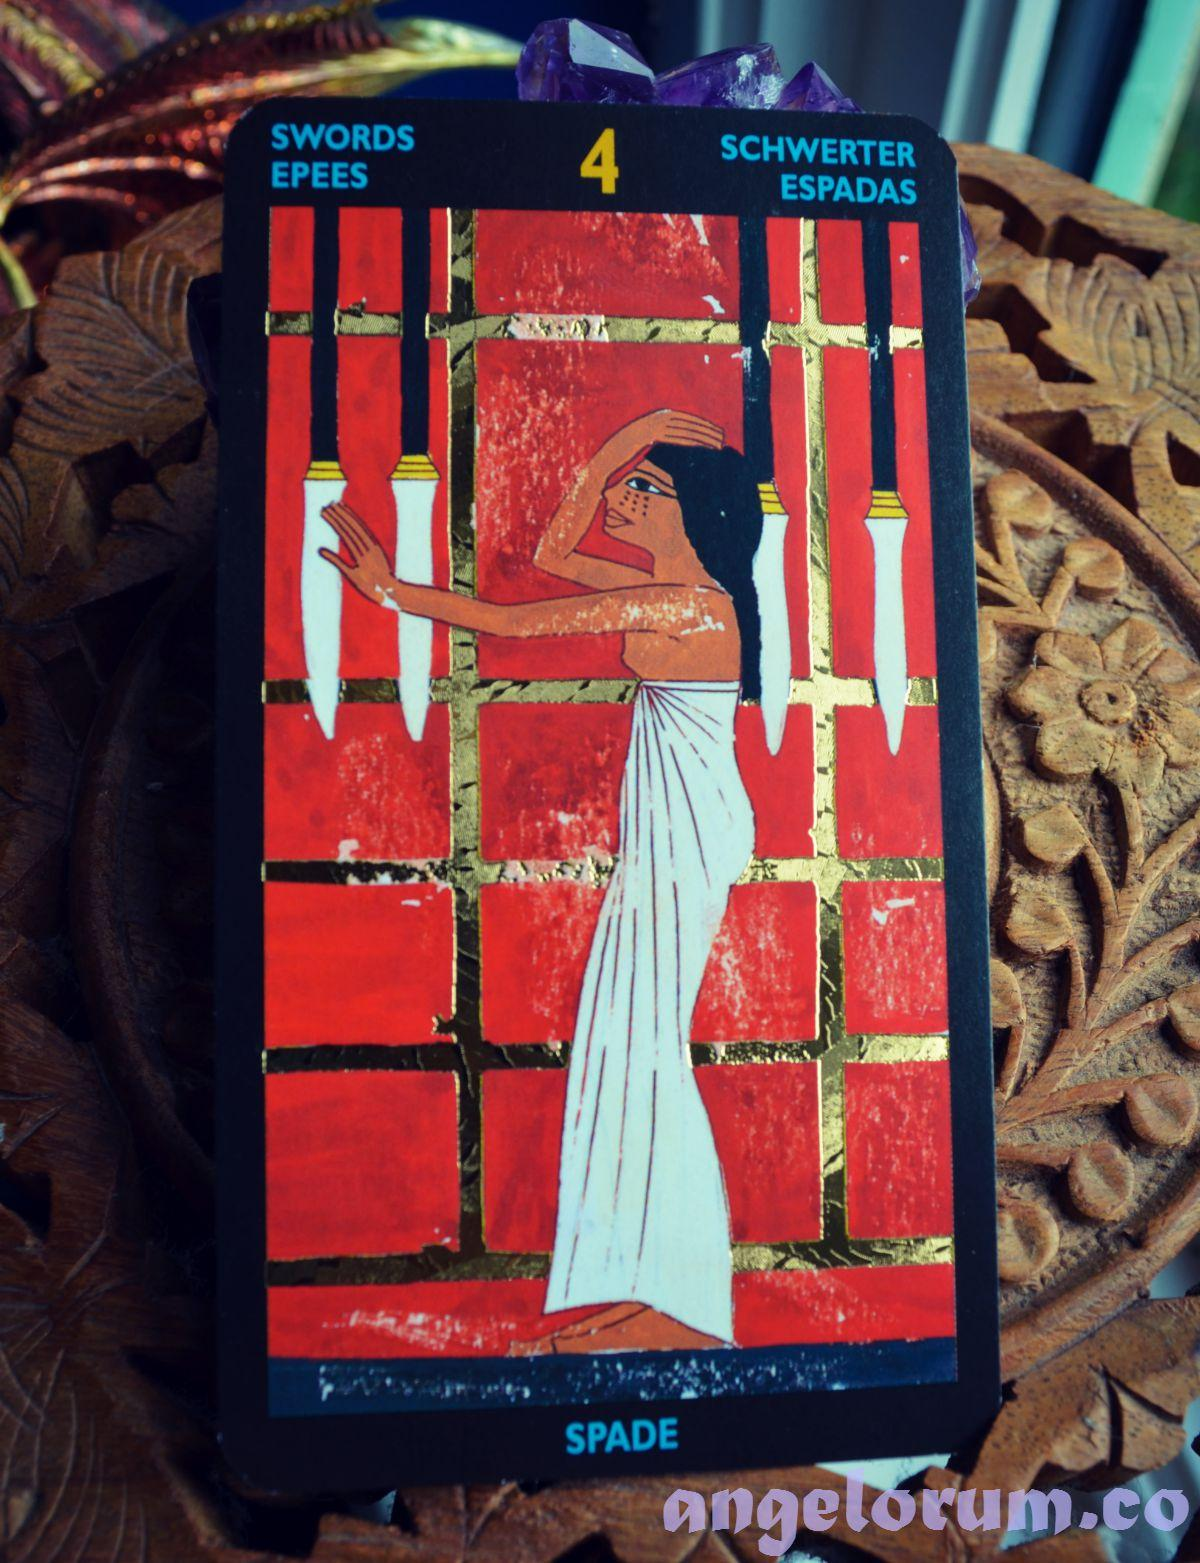 4 of Swords Nefertari's Tarot